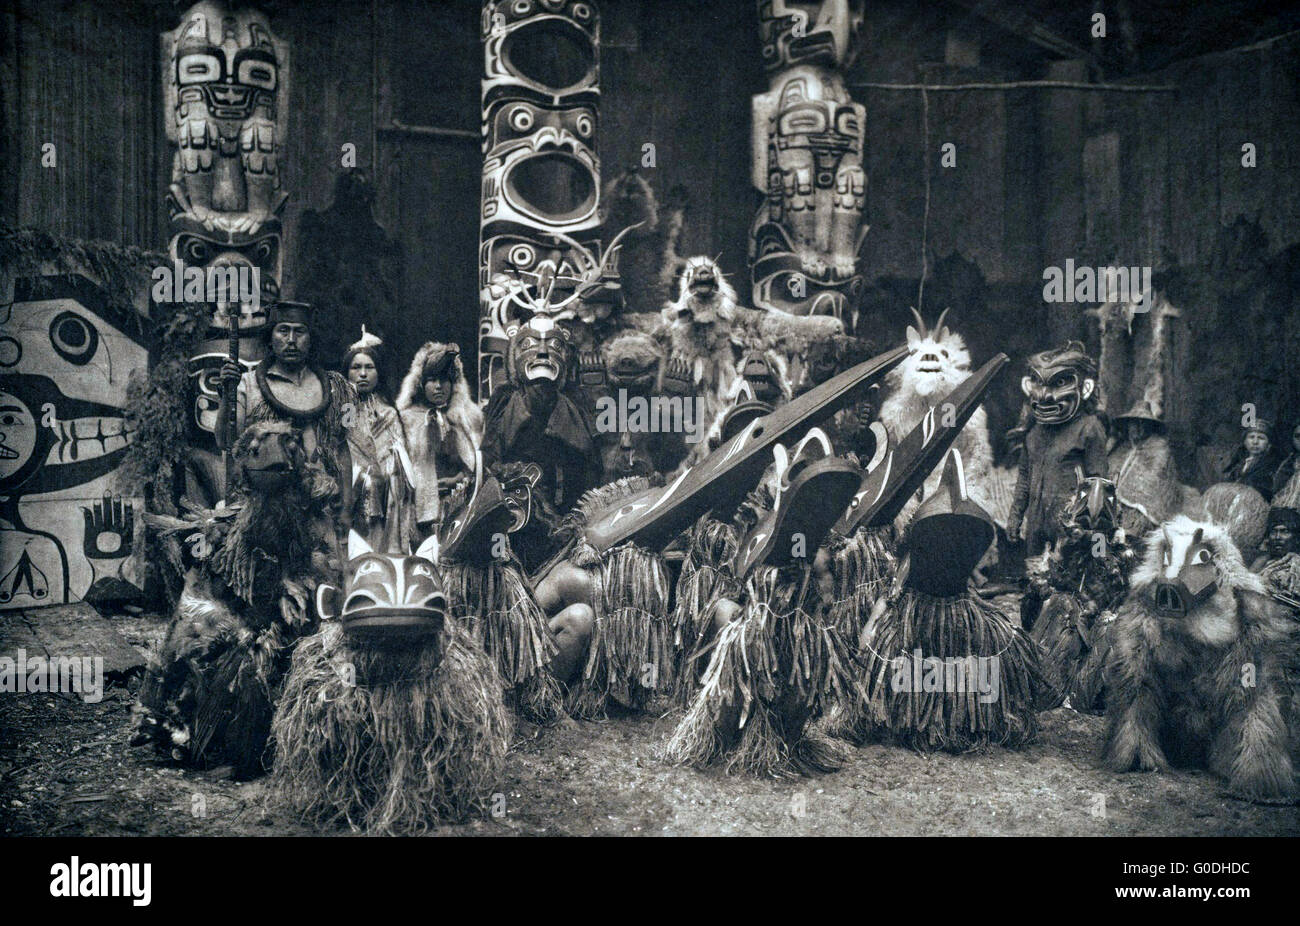 kwakiutl traditions